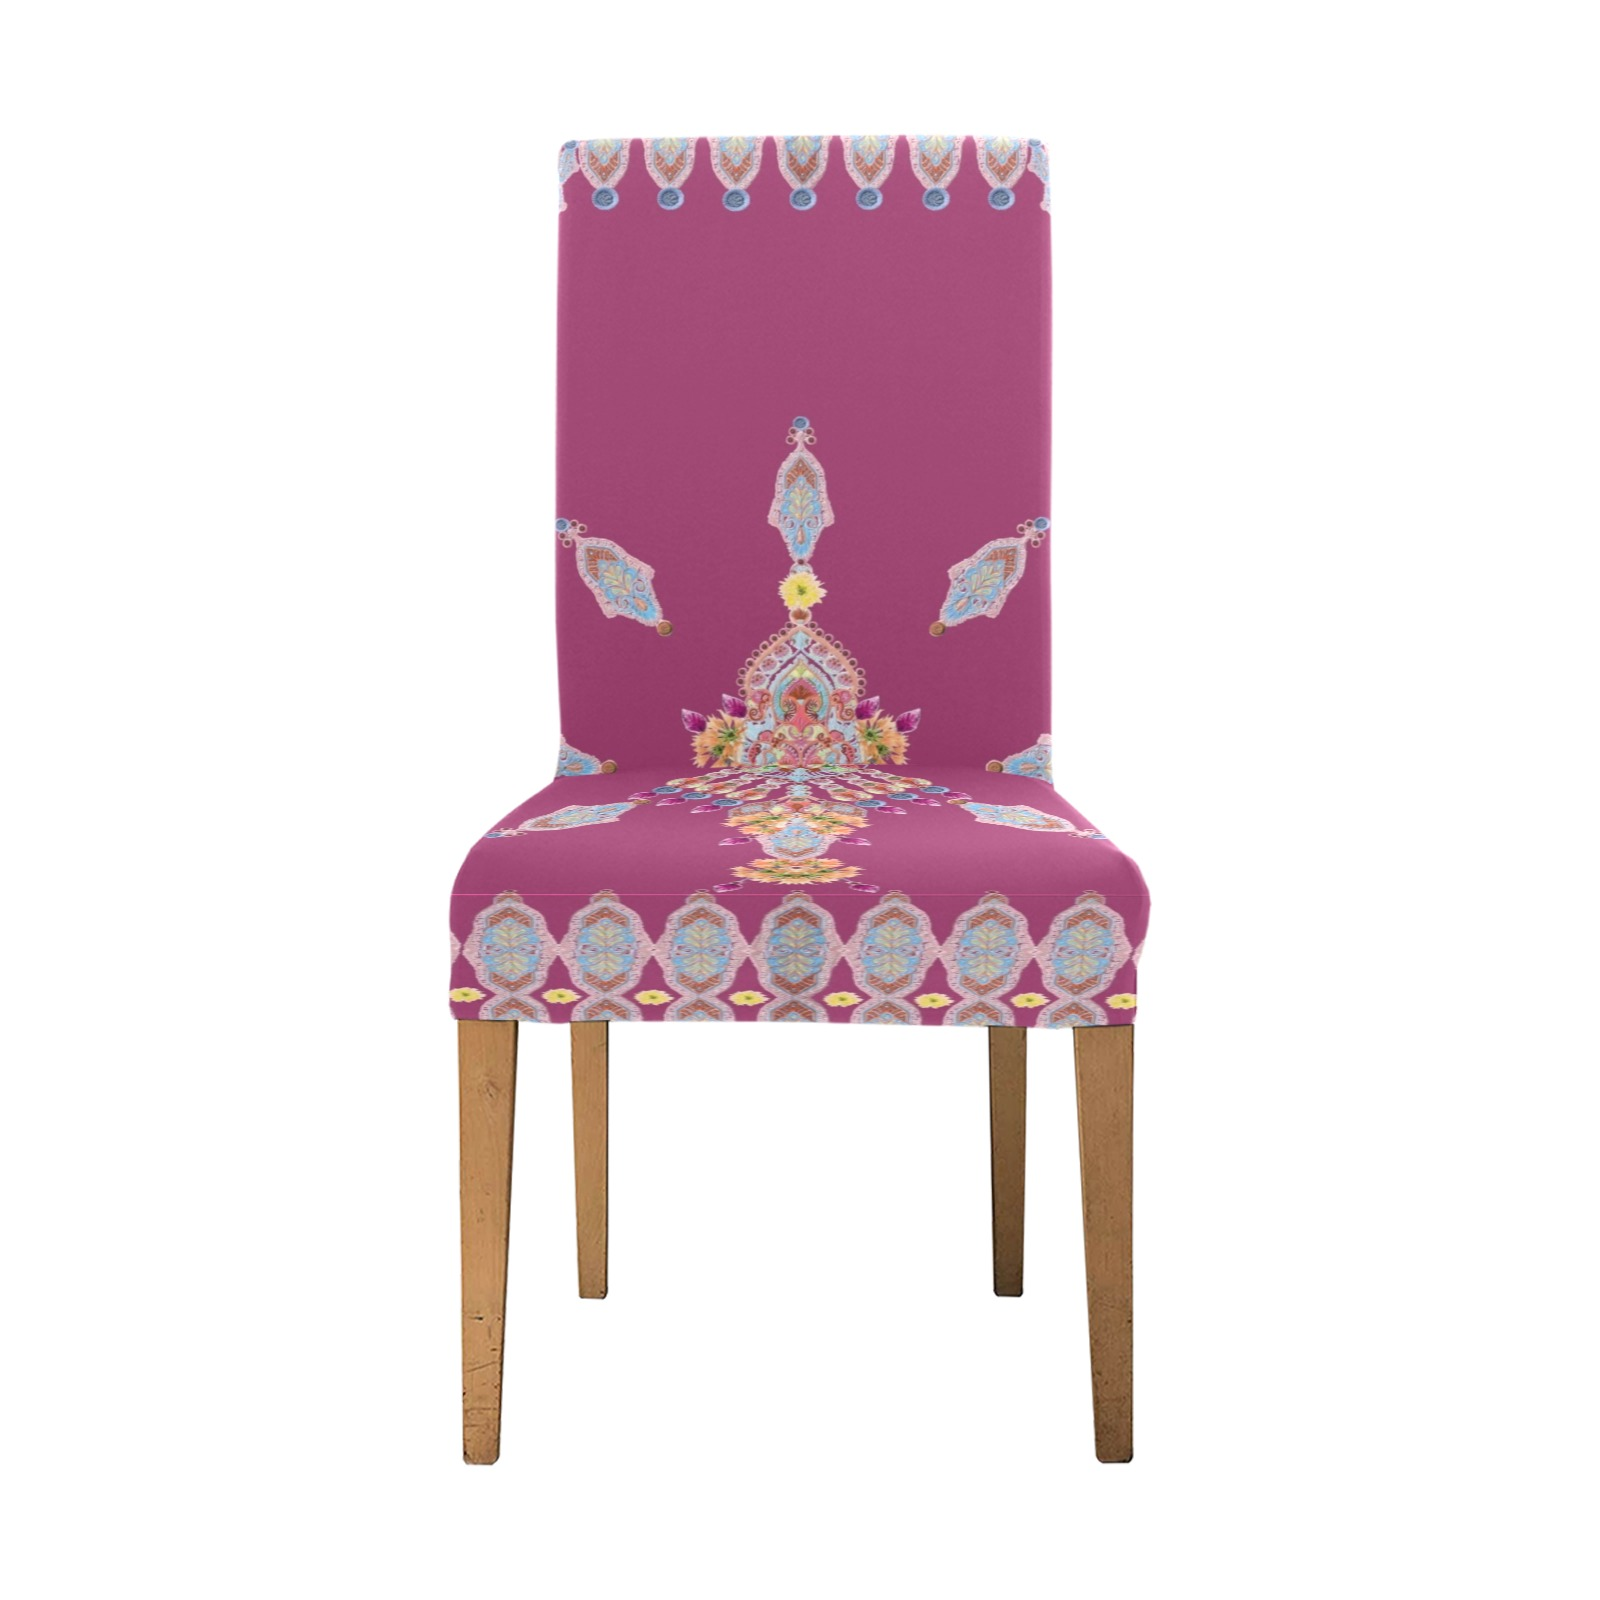 bleuet rouge Removable Dining Chair Cover